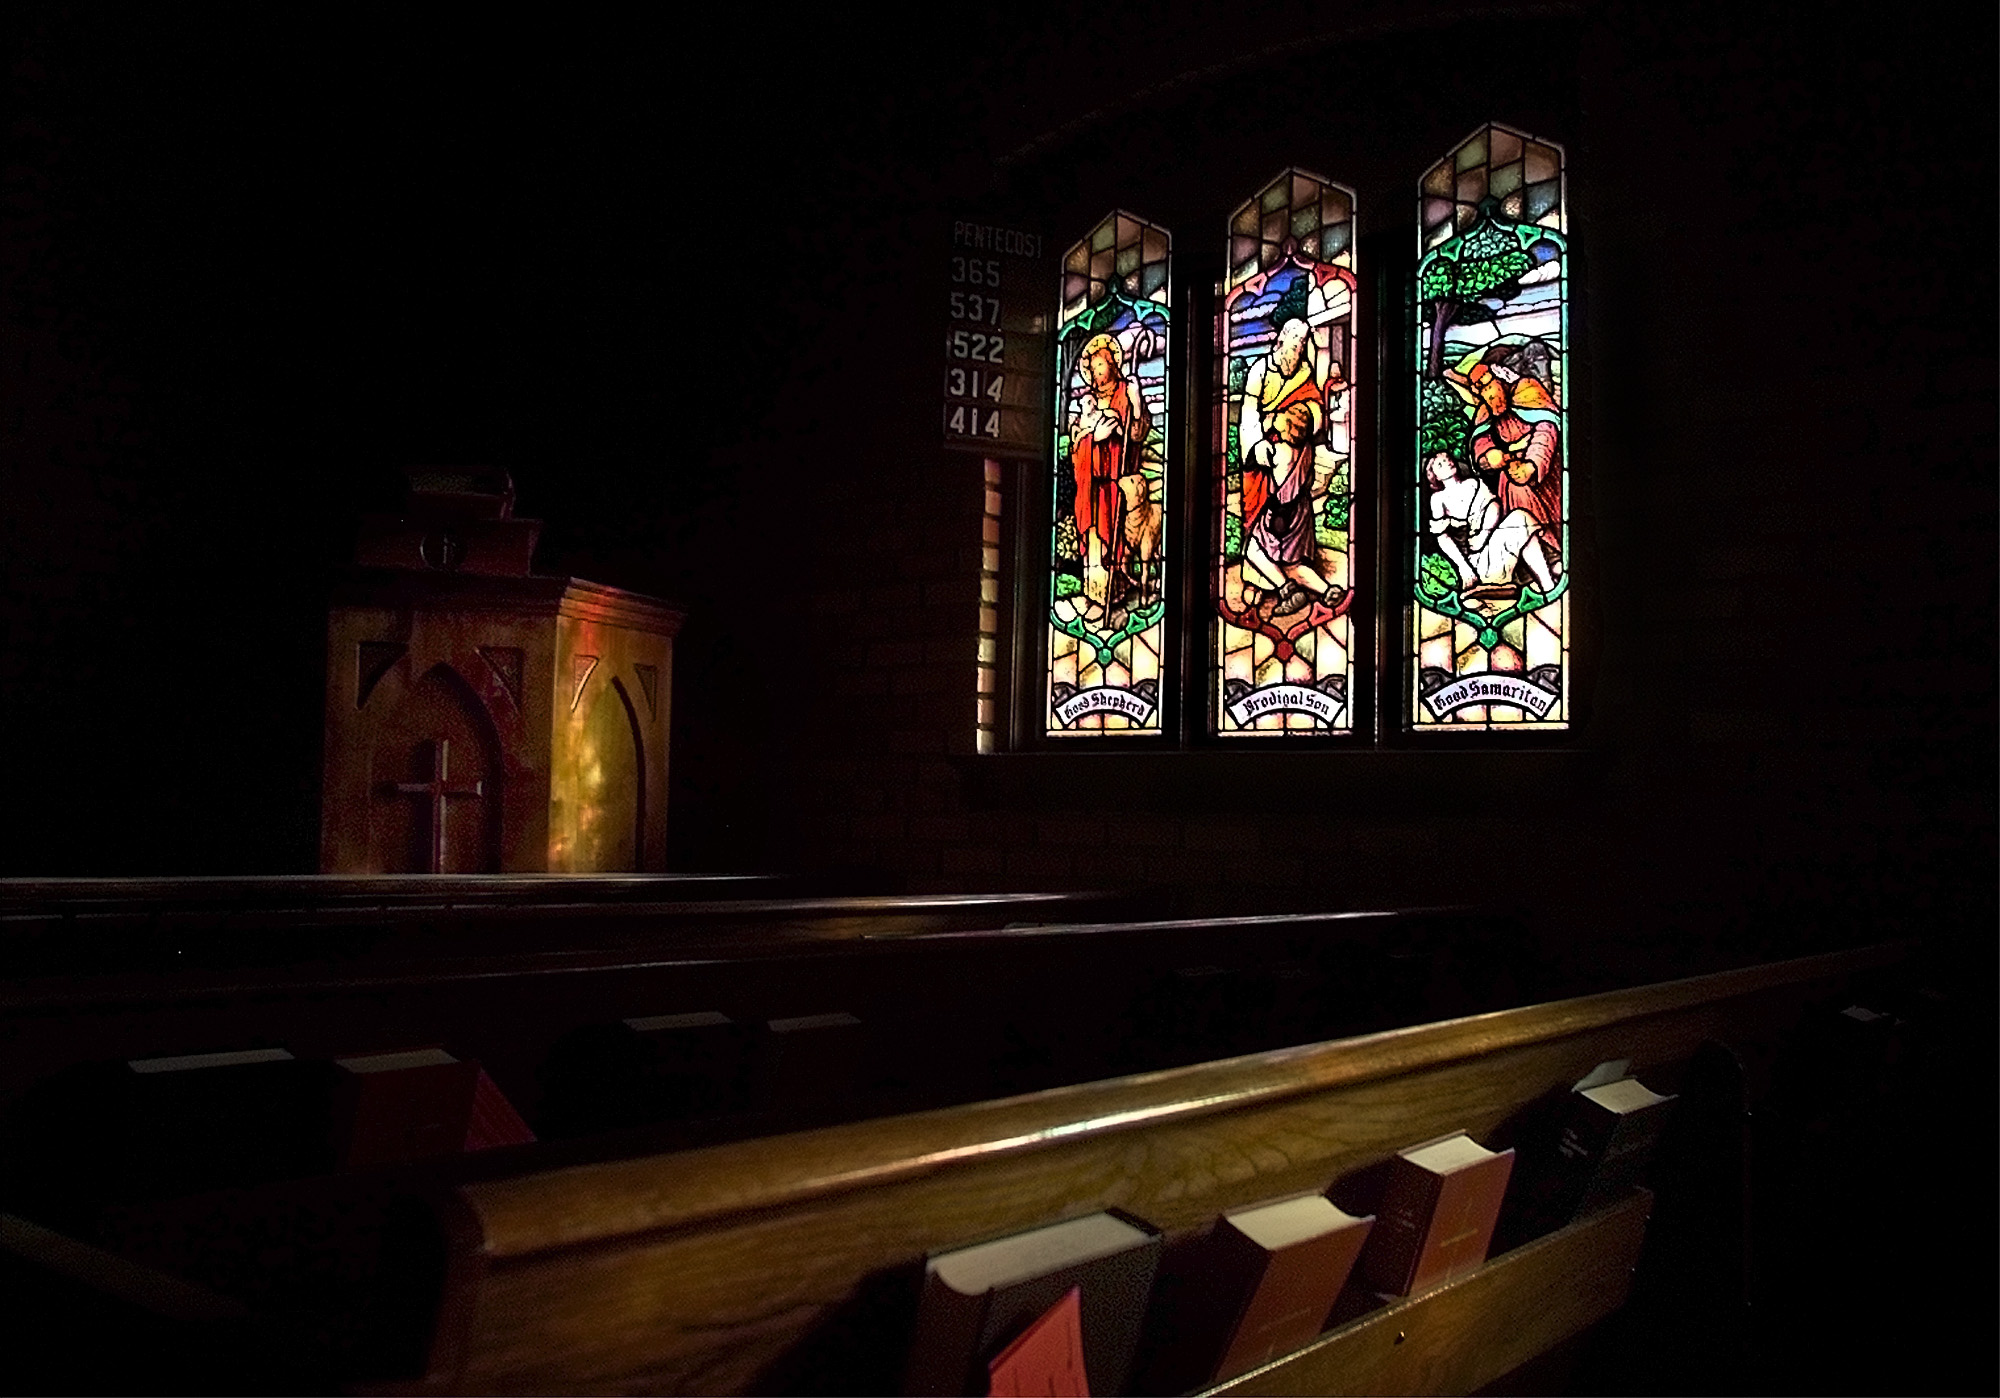 Stained glass windows in the chapel at St. Mary's Episcopal Church in Provo illuminate the podium and pews. The window seen depicts the Good Shepherd, Prodigal Son and Good Samaritan.